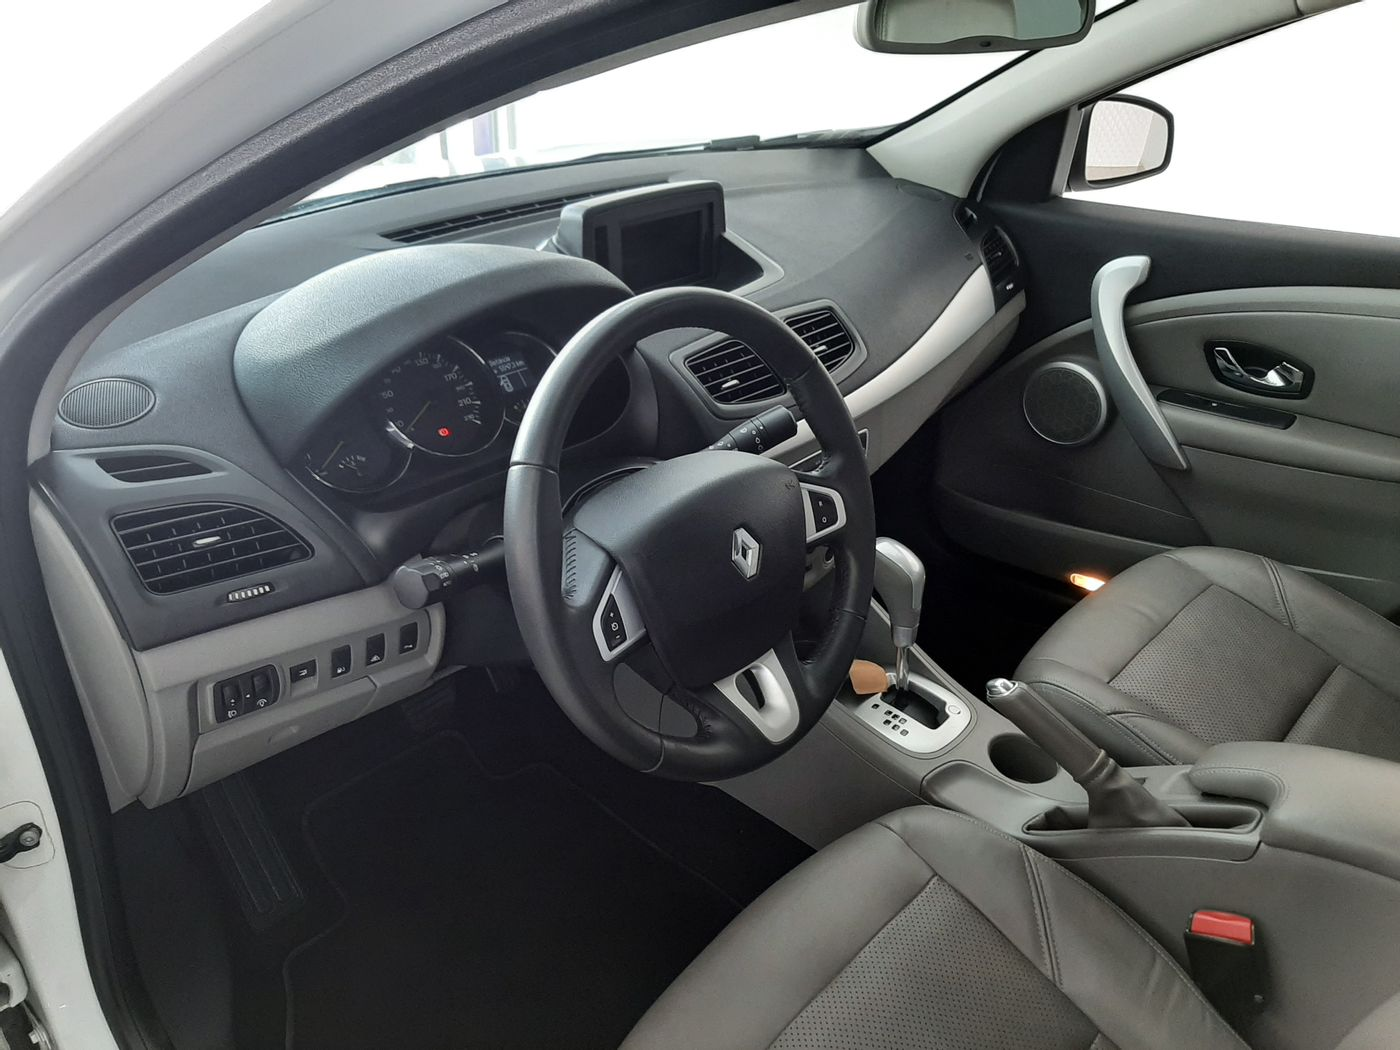 Renault FLUENCE Sedan Privilège 2.0 16V FLEX Aut